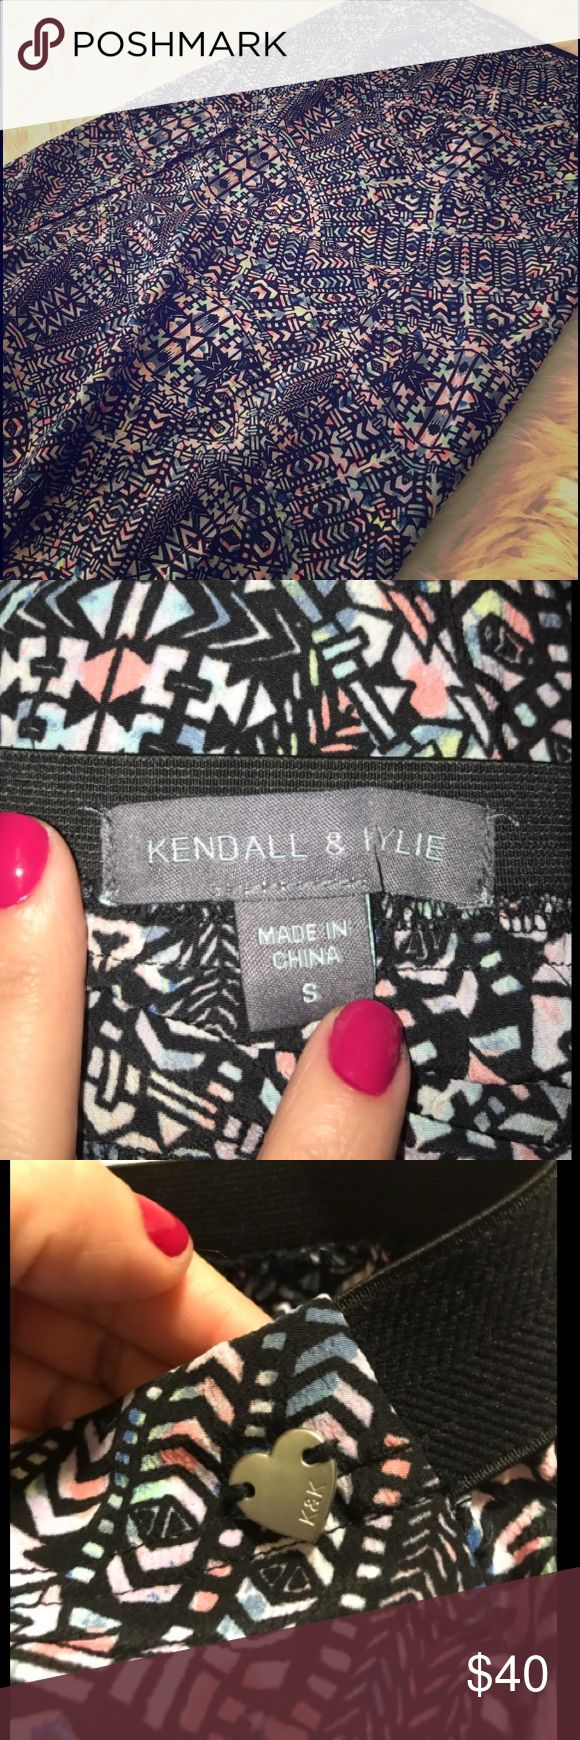 Kendall & Kylie Double-Slit Skirt Kendall & Kylie Double-Slit Skirt. Tribal-inspired with gorgeous neons and black and white accents. Perfect for a festival/beach party and wanting to stand out! Elastic band and very comfortable! Make an offer! Never worn! Kendall & Kylie Skirts Maxi